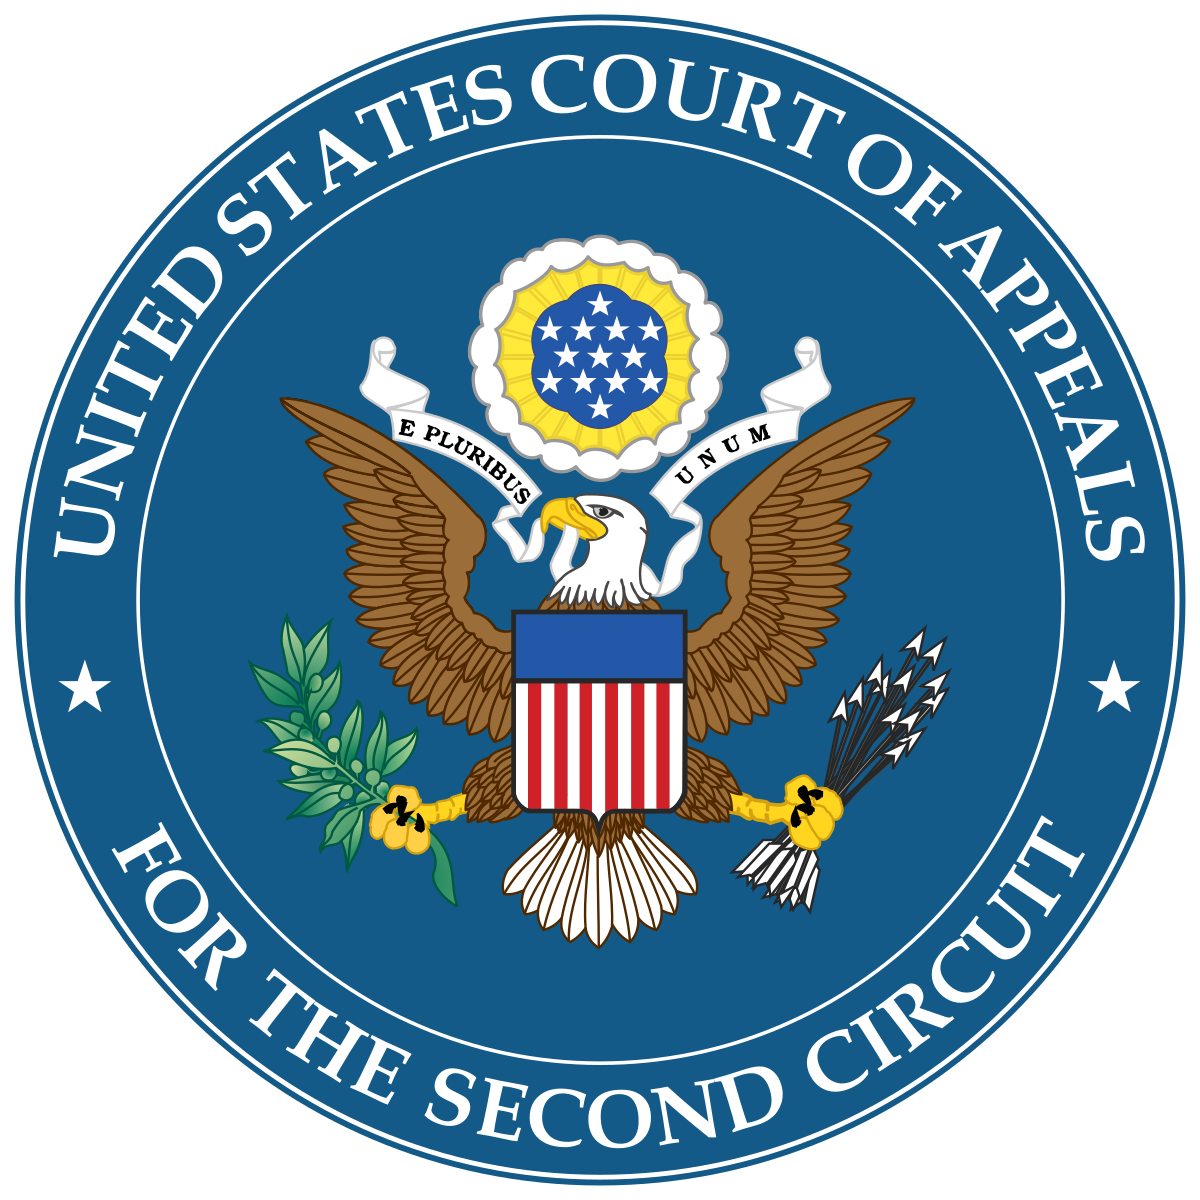 U.S. Court of Appeals for the Second Circuit